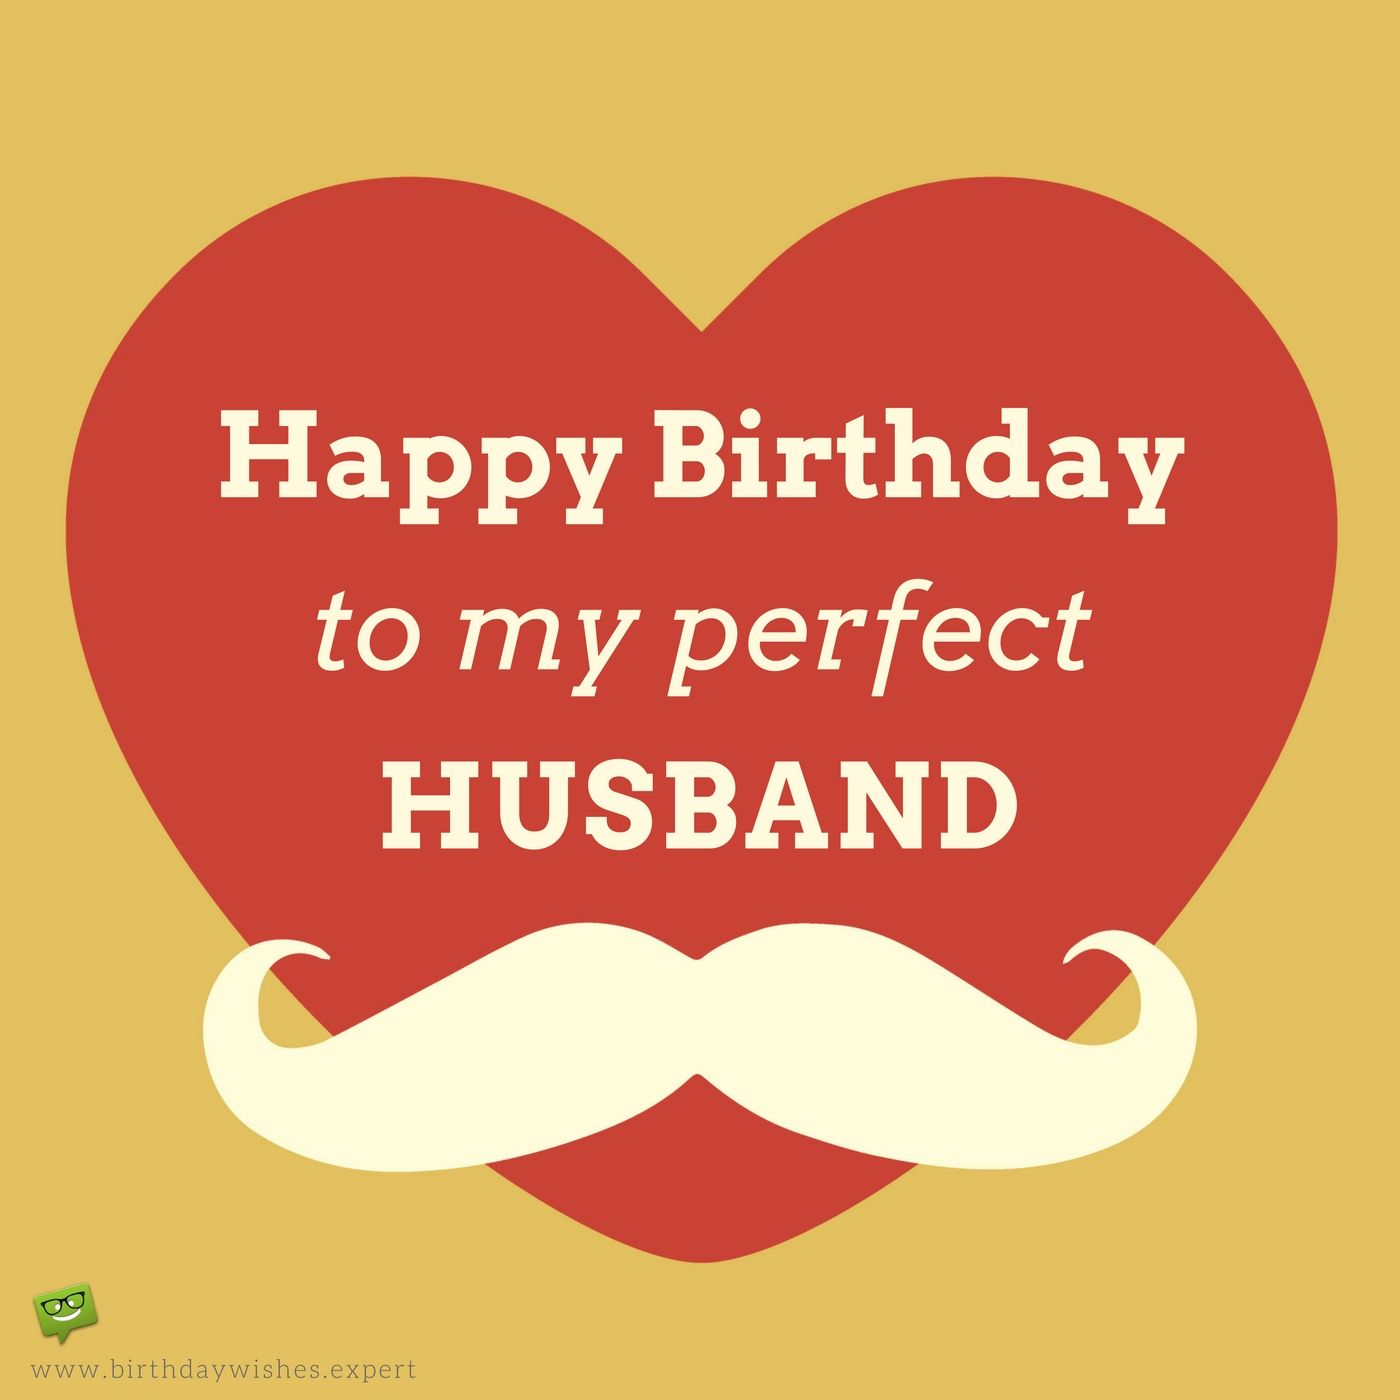 Original birthday quotes for your husband perfect husband original birthday quotes for your husband bookmarktalkfo Image collections